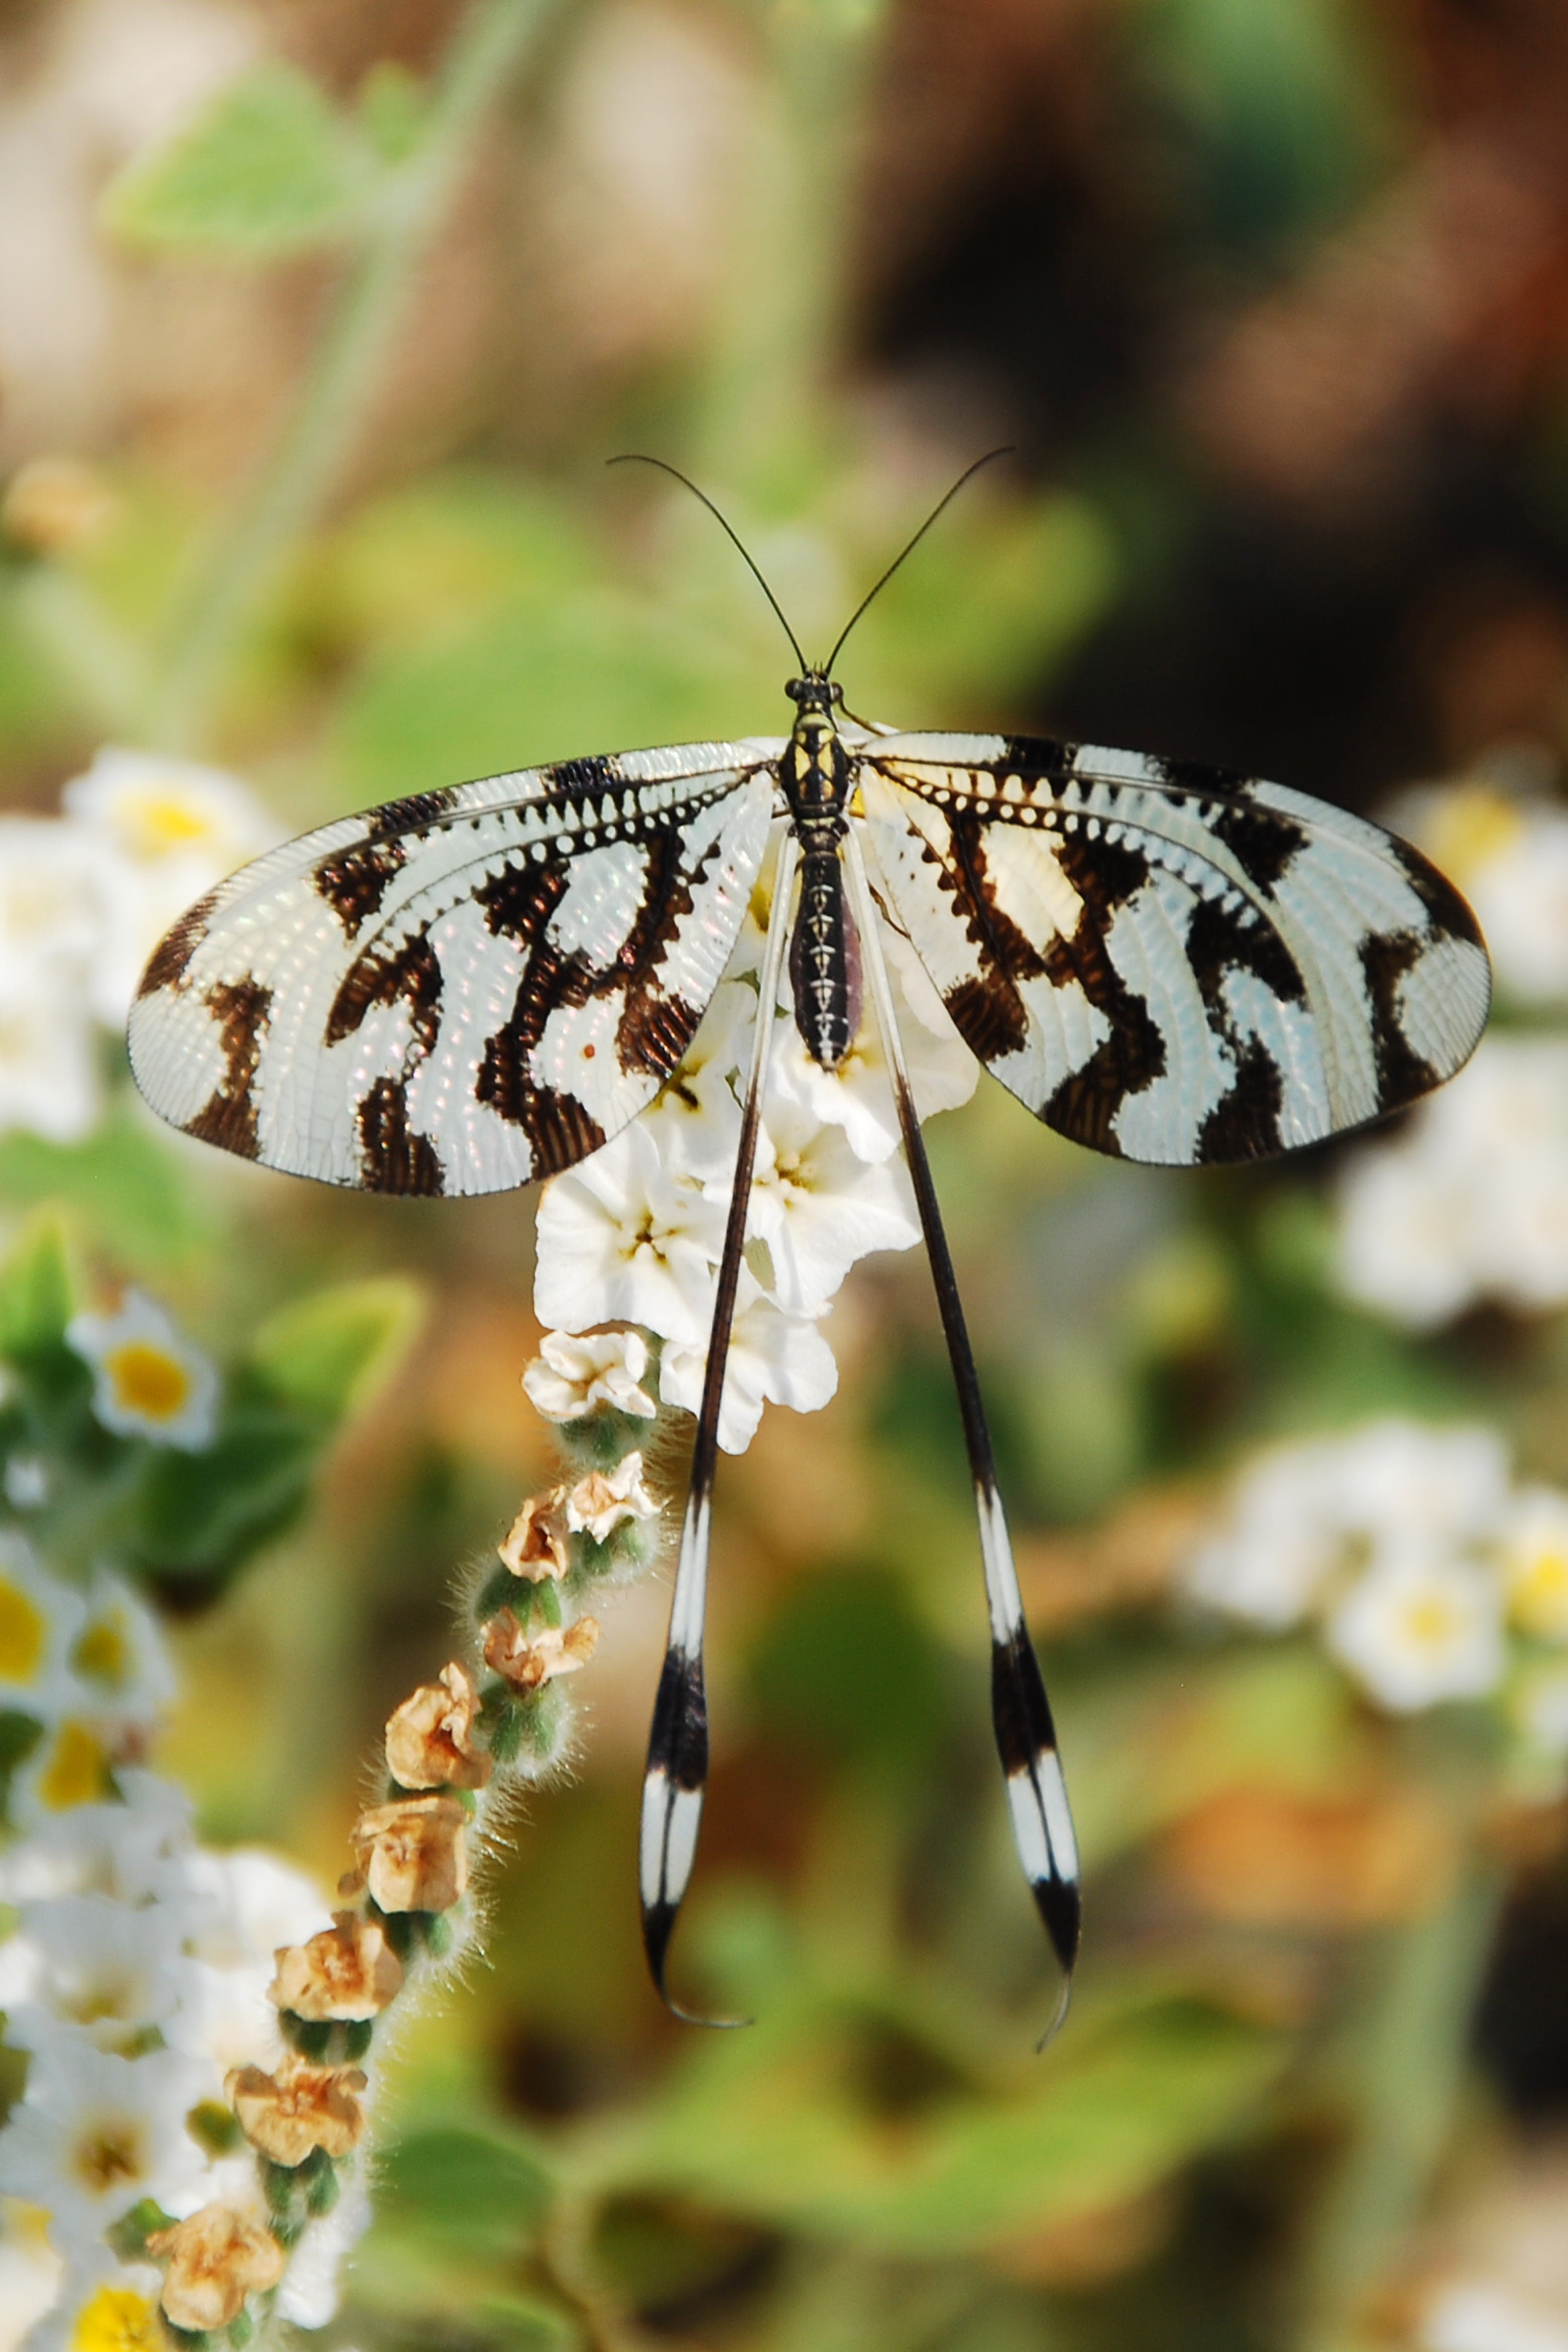 White and Black Butterfly Perched on White Flowers in Bloom Selective Focus Photo